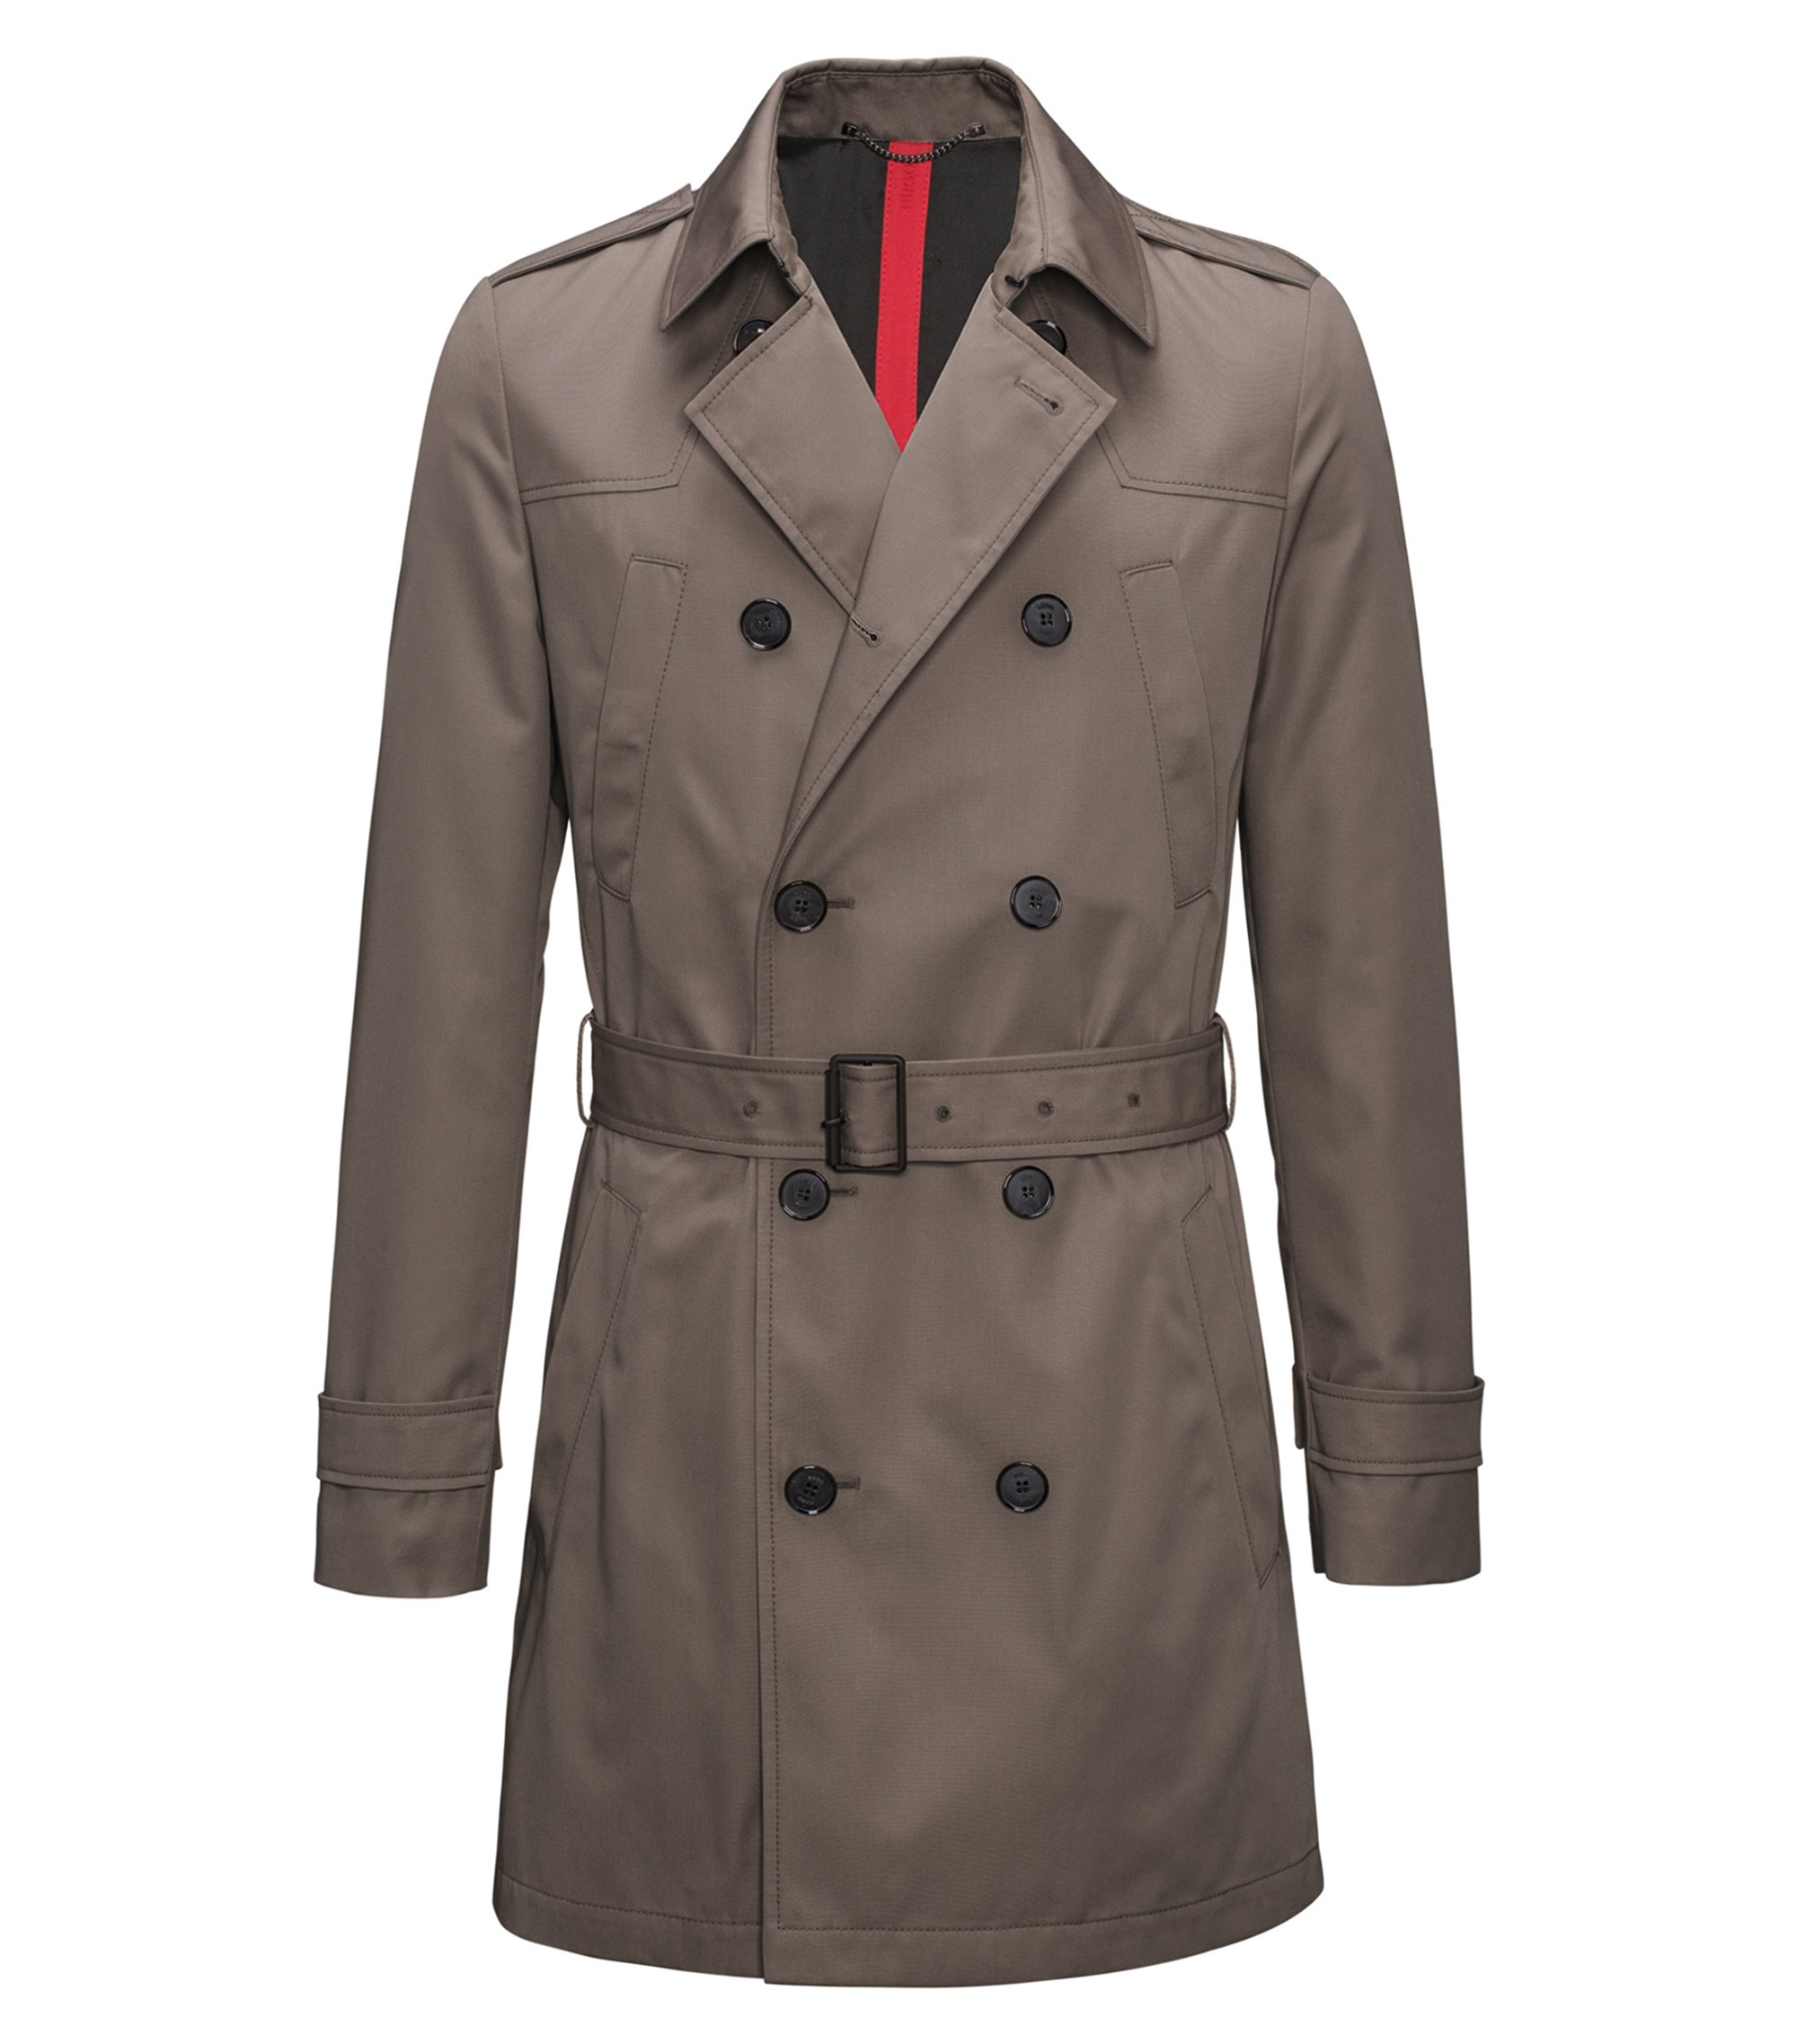 Trench-coat Slim Fit en tissu imperméable, Marron